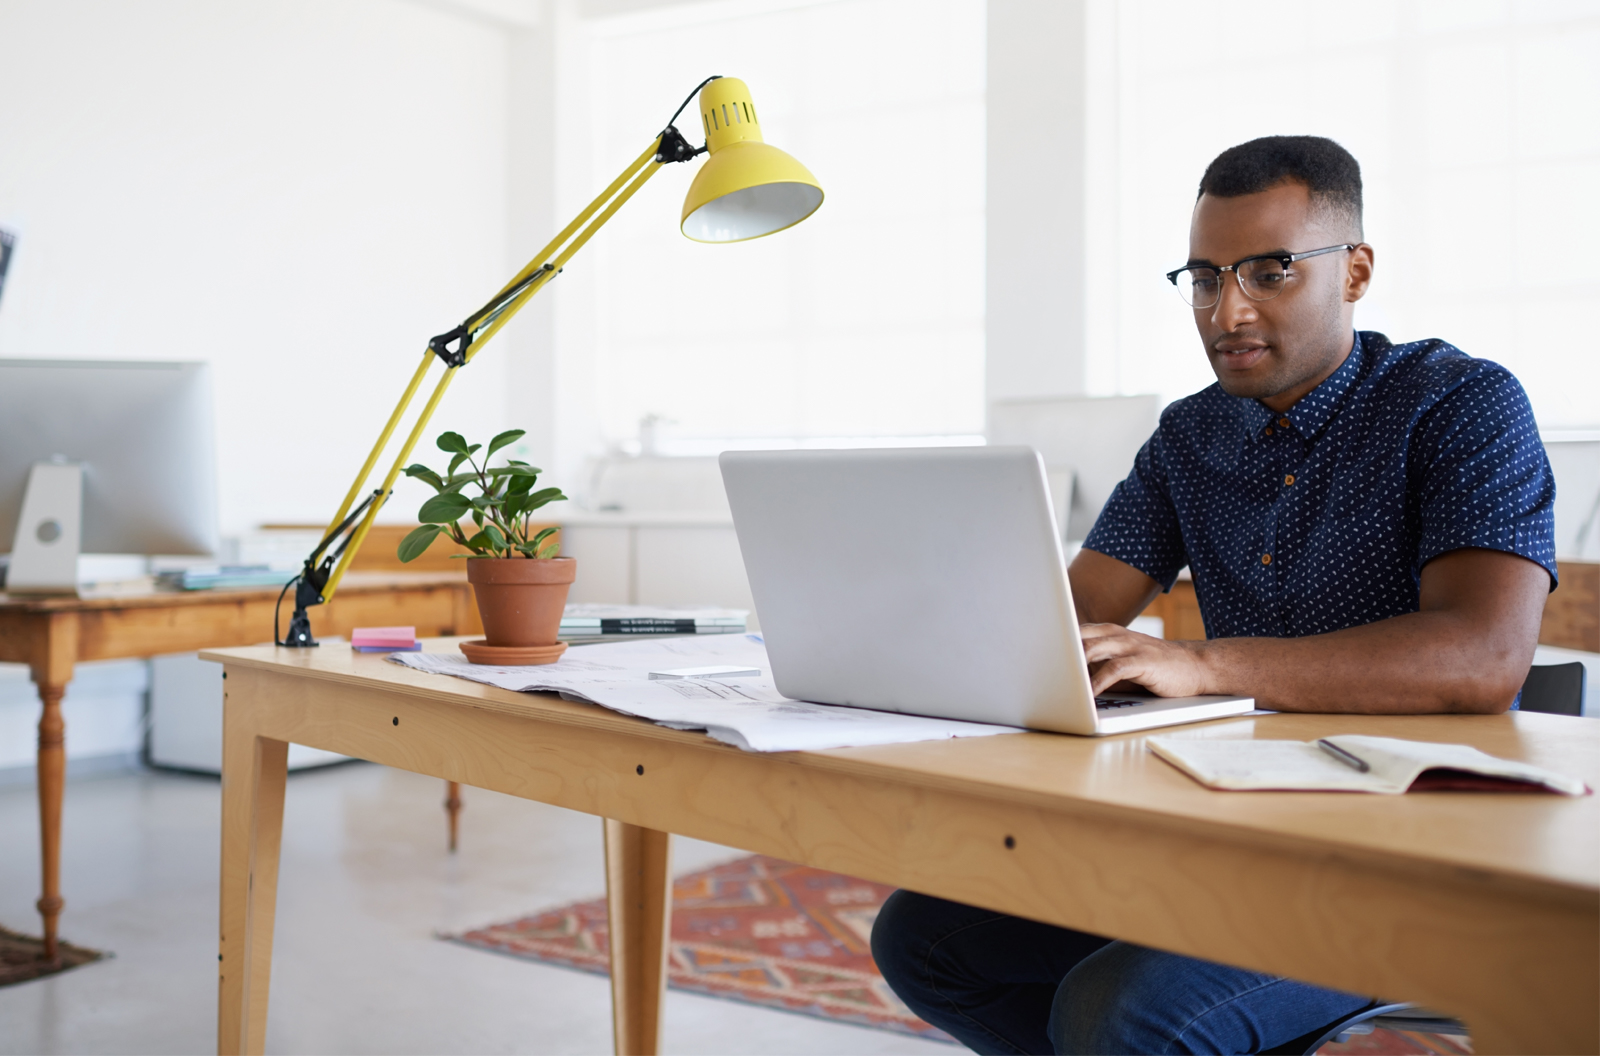 Young man working at his desk typing on a laptop computer